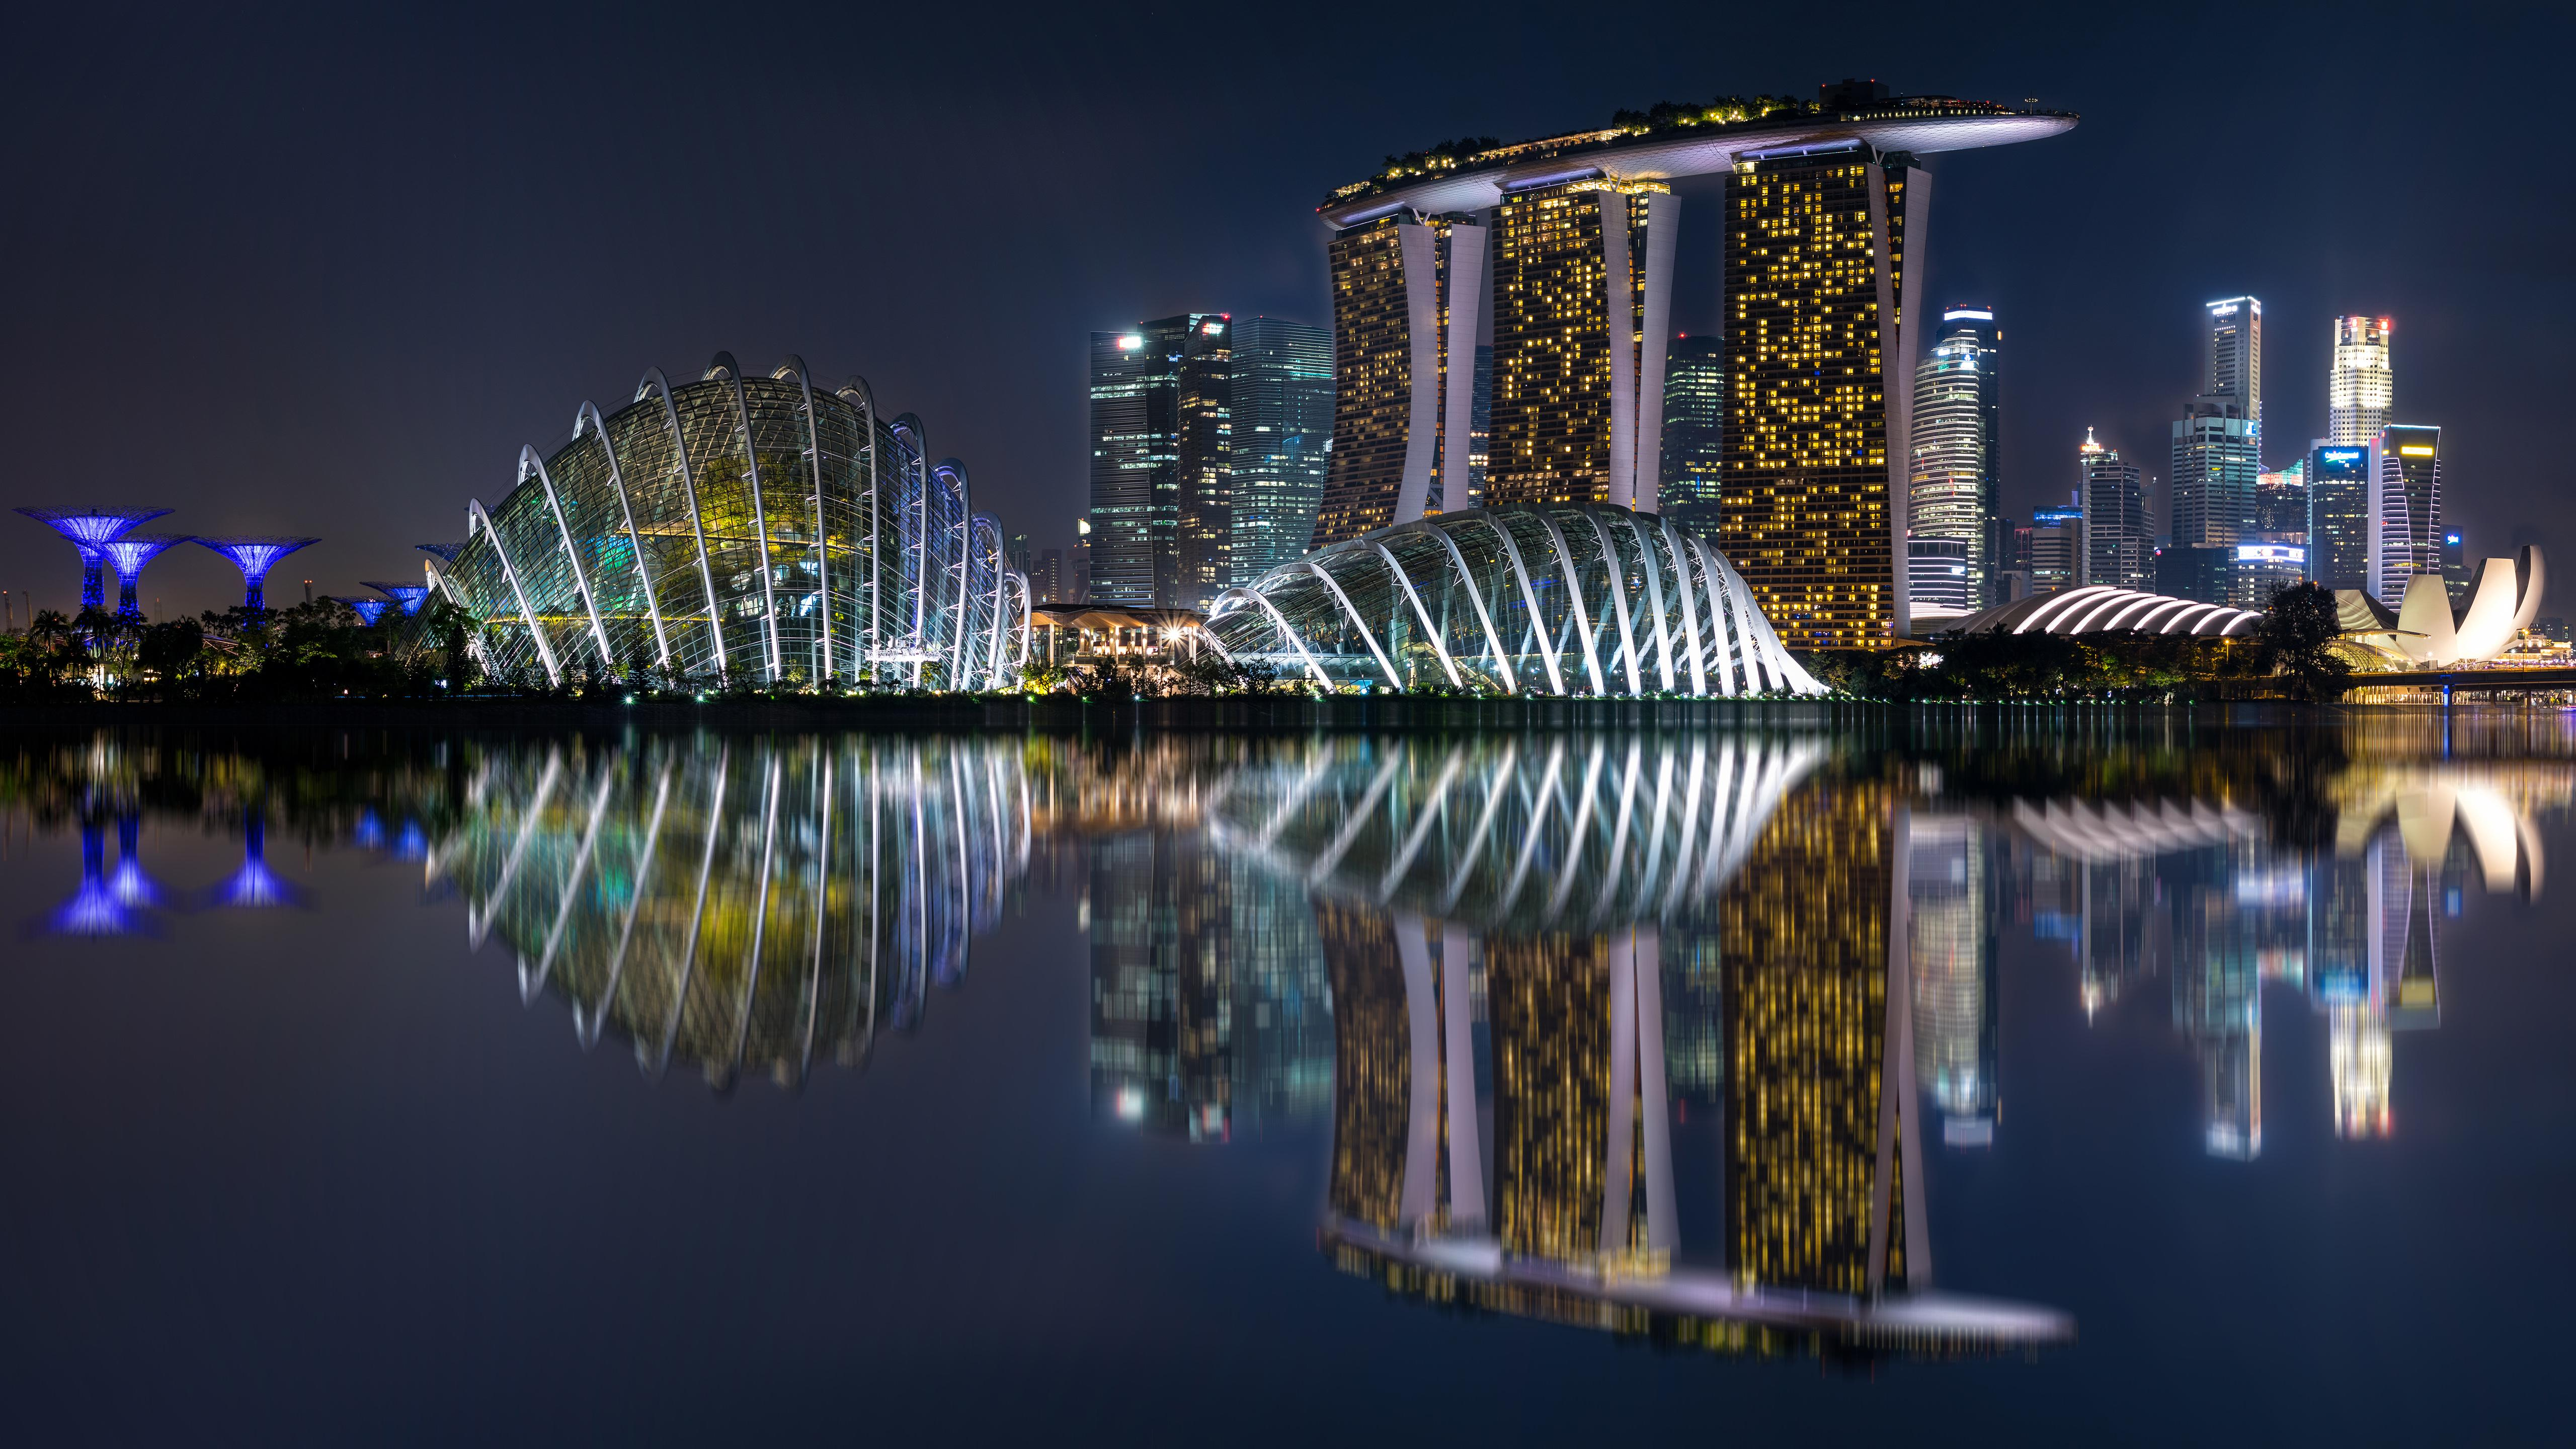 Marina Bay Sands 5k Retina Ultra HD Wallpapers